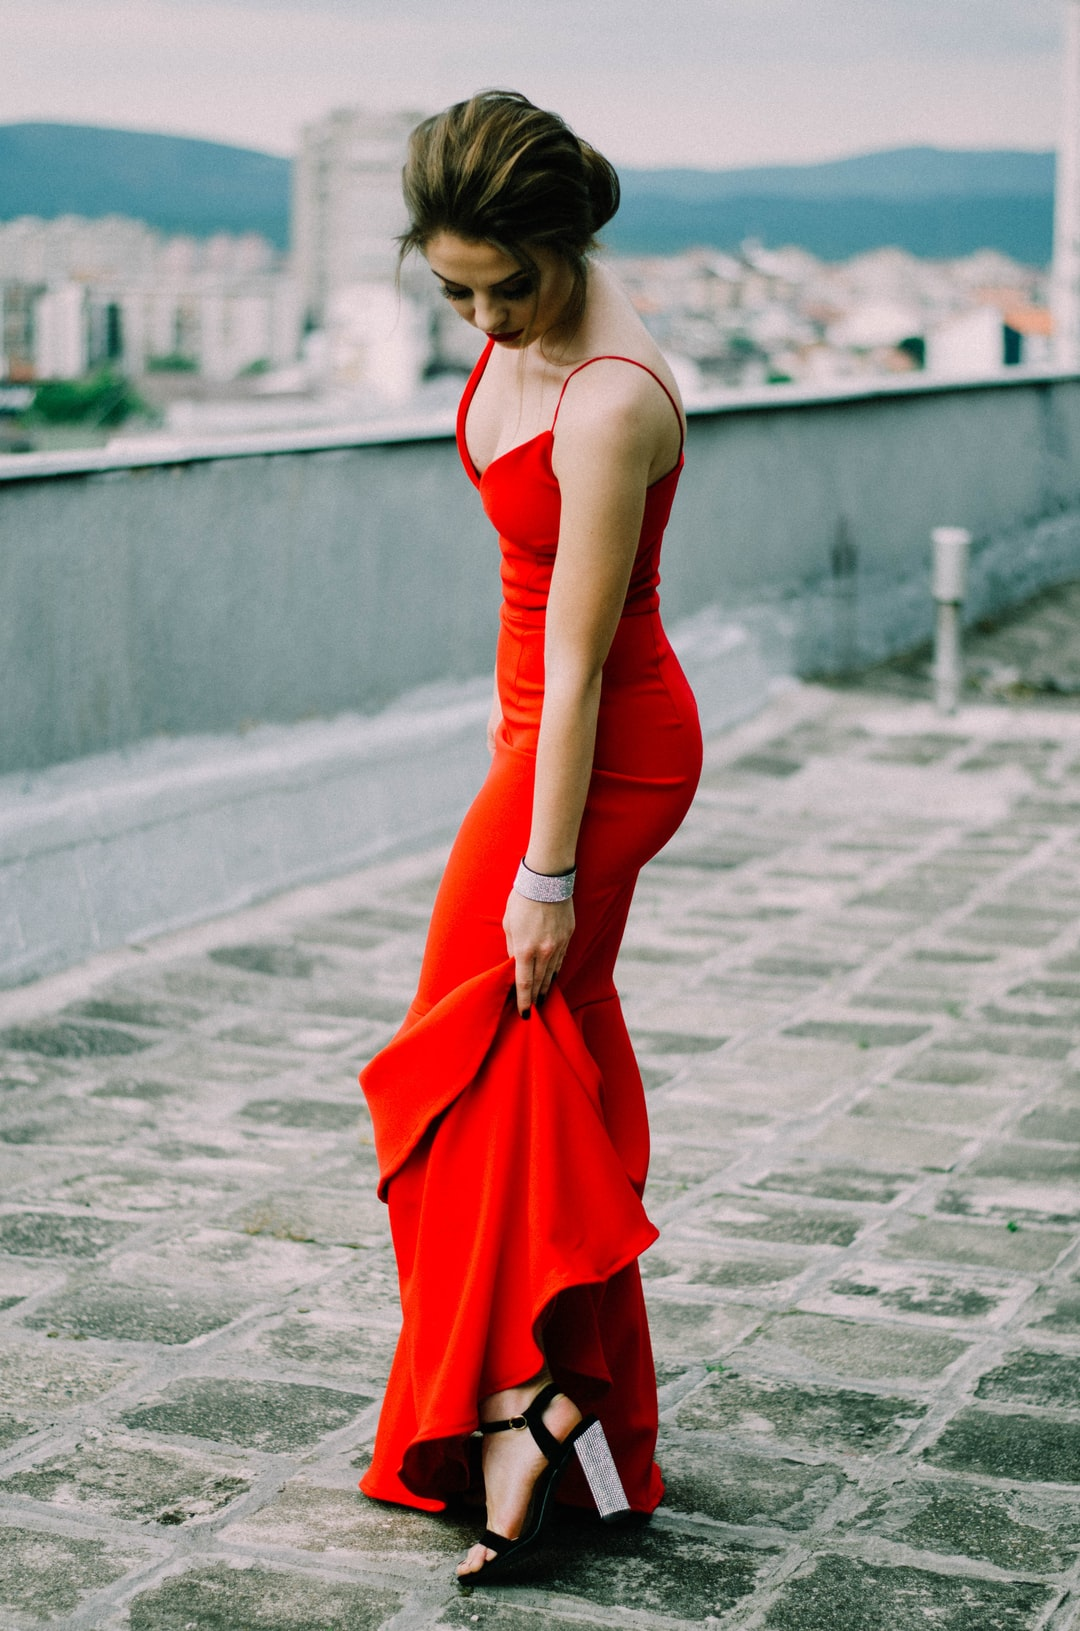 woman in red renting out her dress to another person